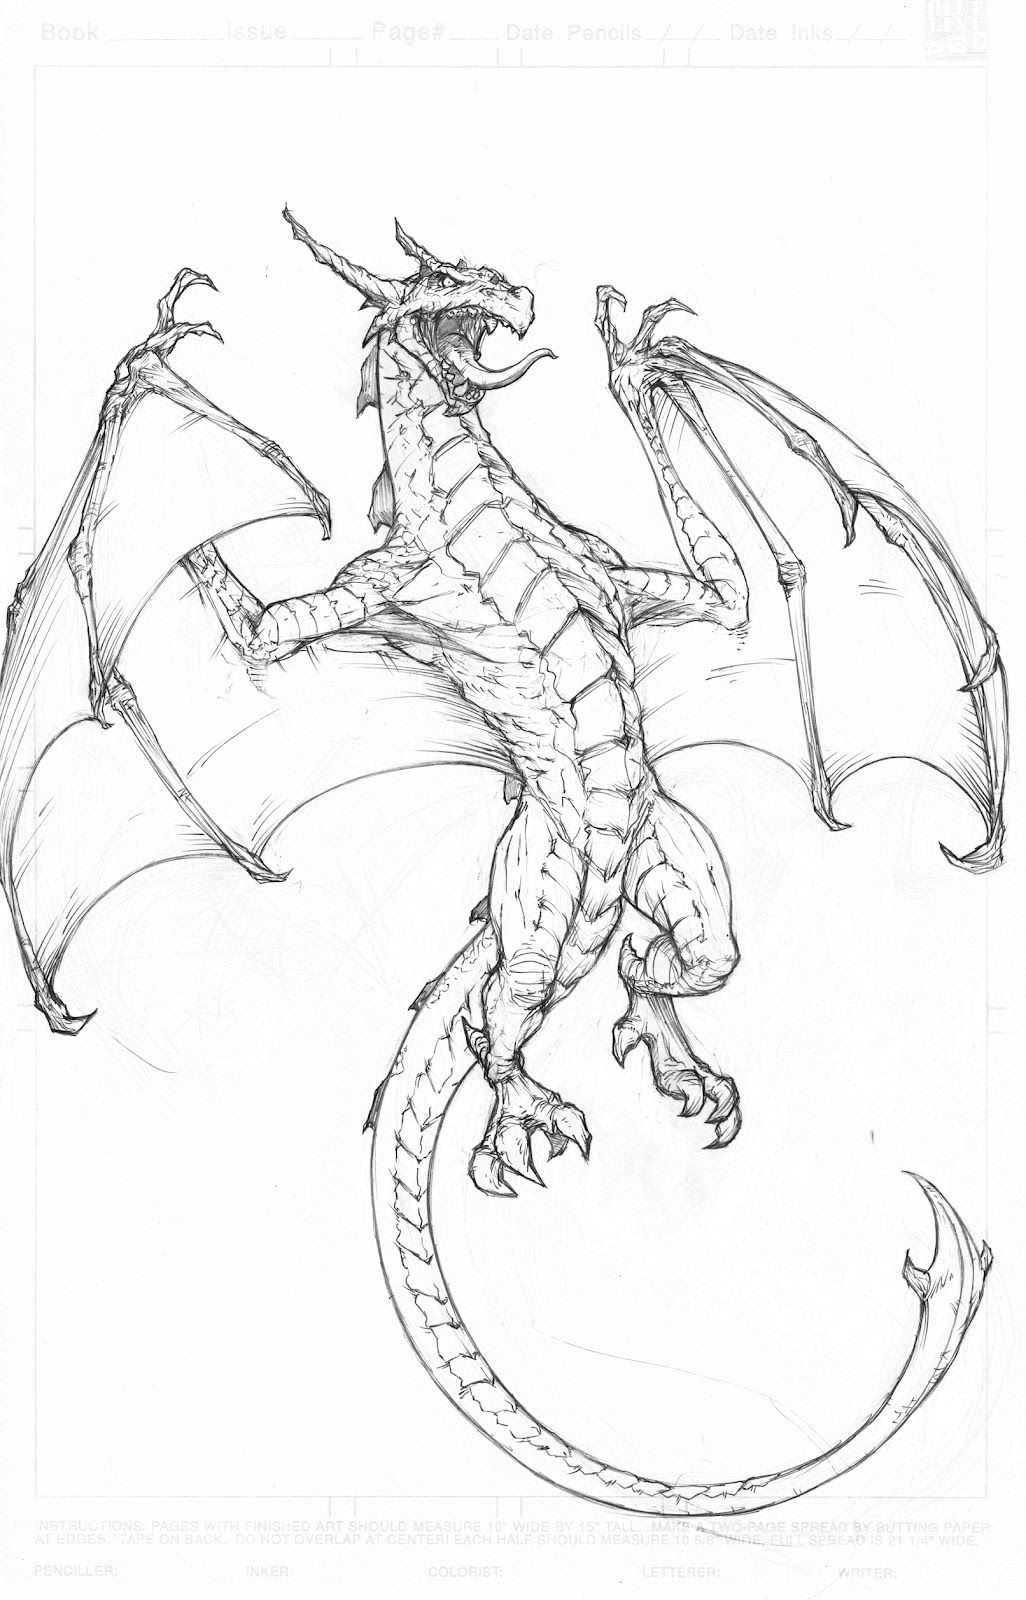 Amazing Drawings Of Dragons